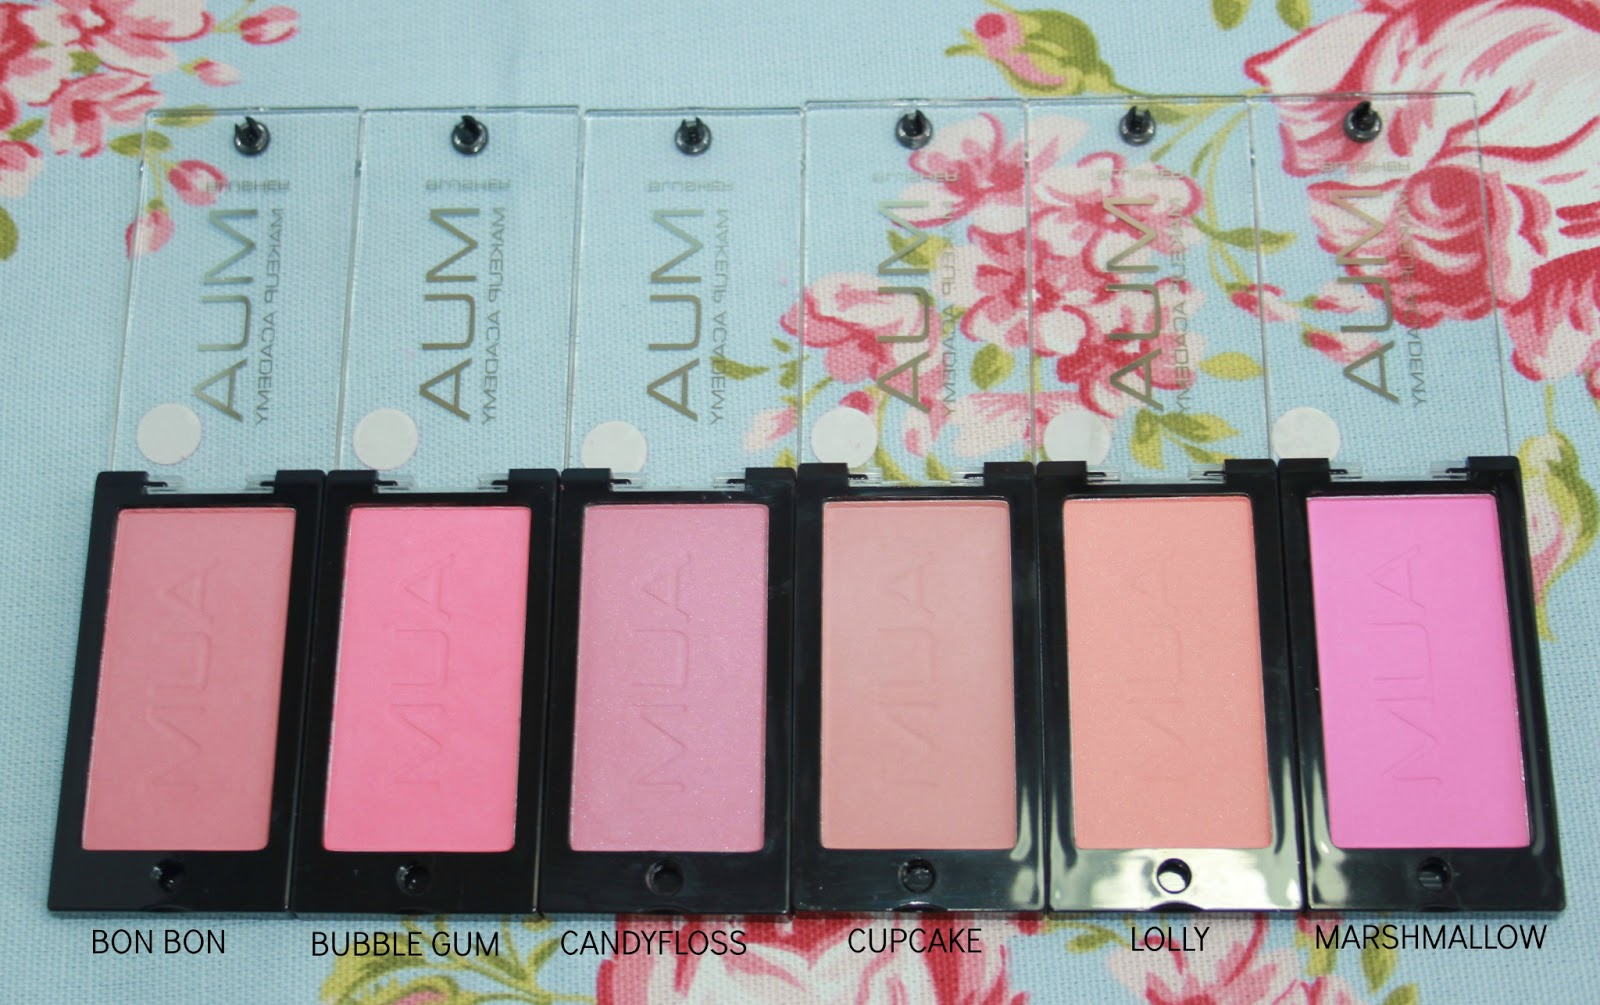 MUA POWDER BLUSHER SWATCHES 2013